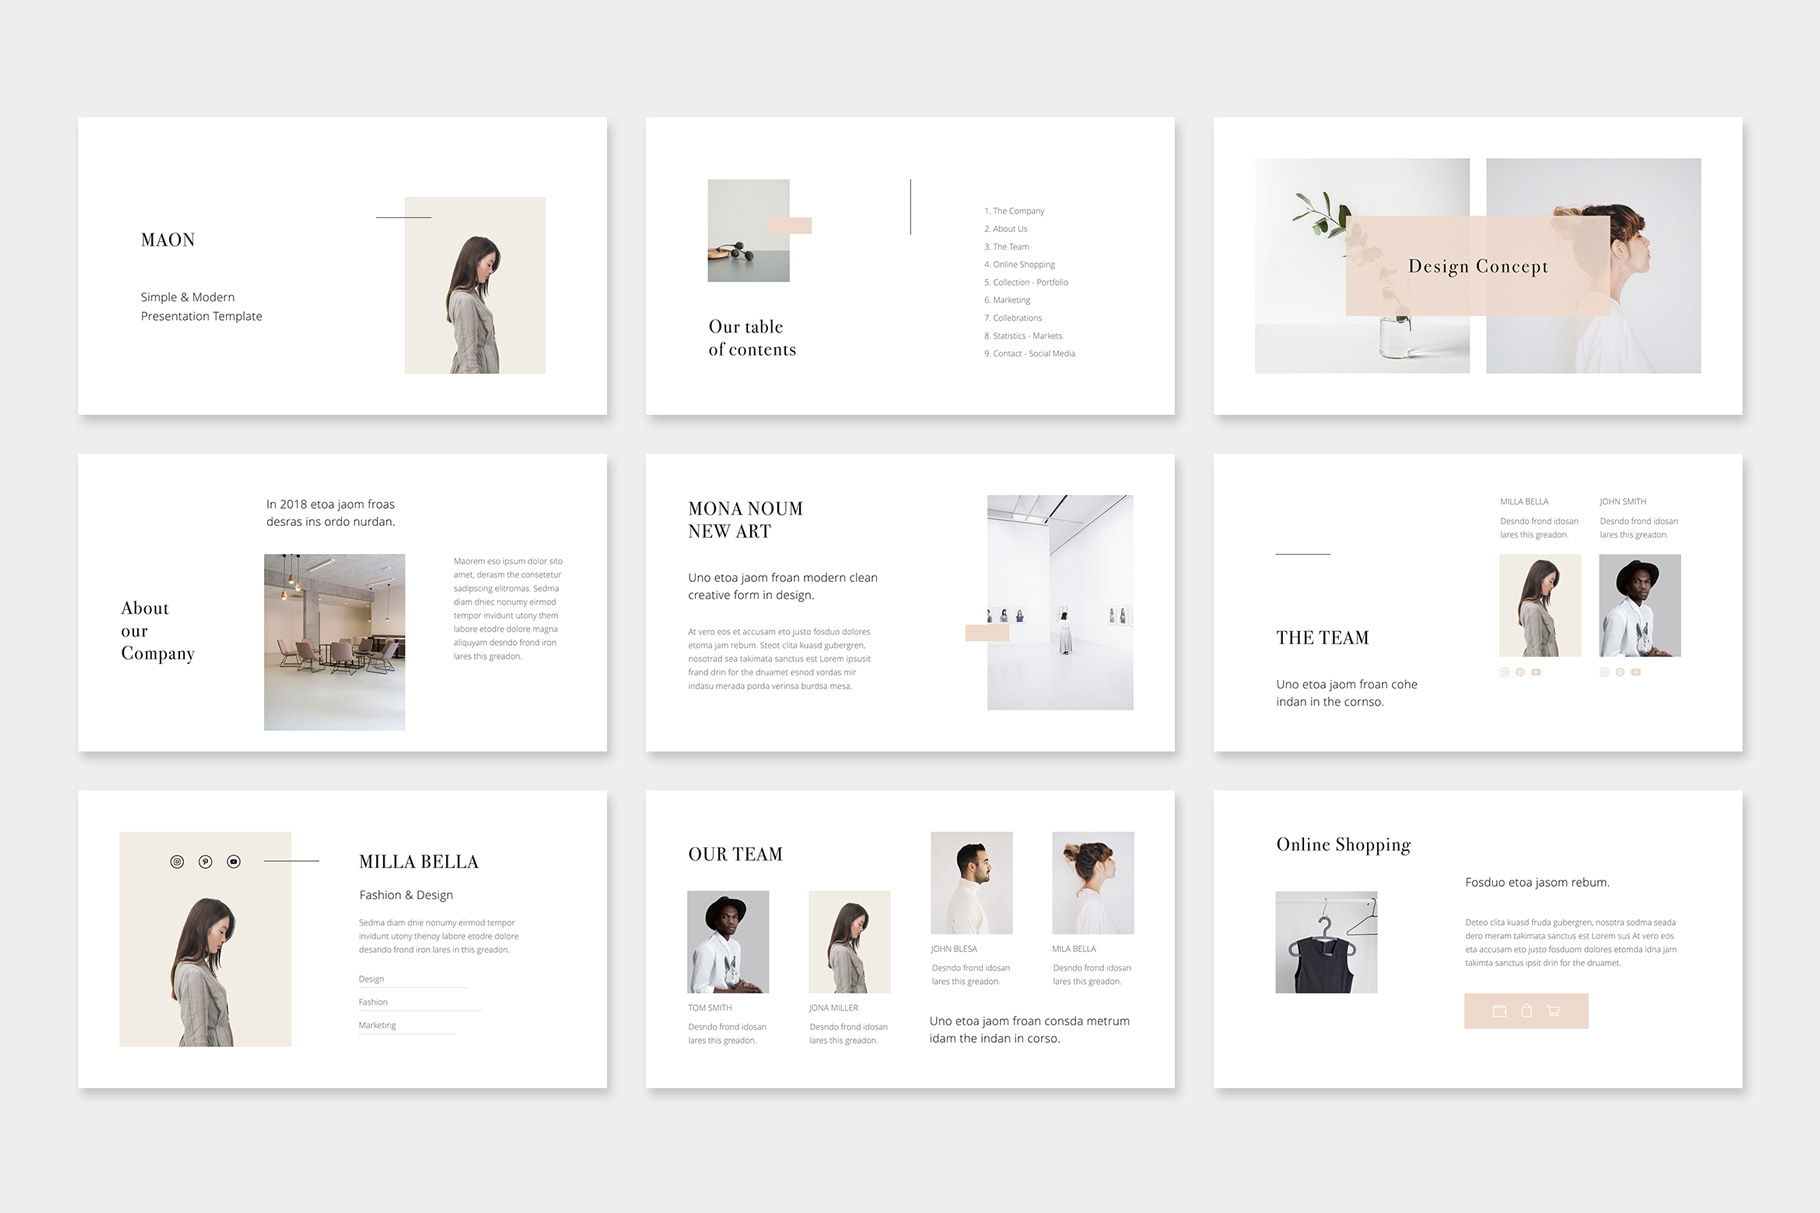 Maon Vertical Keynote A4 Us Letter Presentation Template Graphic By Pixasquare Creative Fabrica